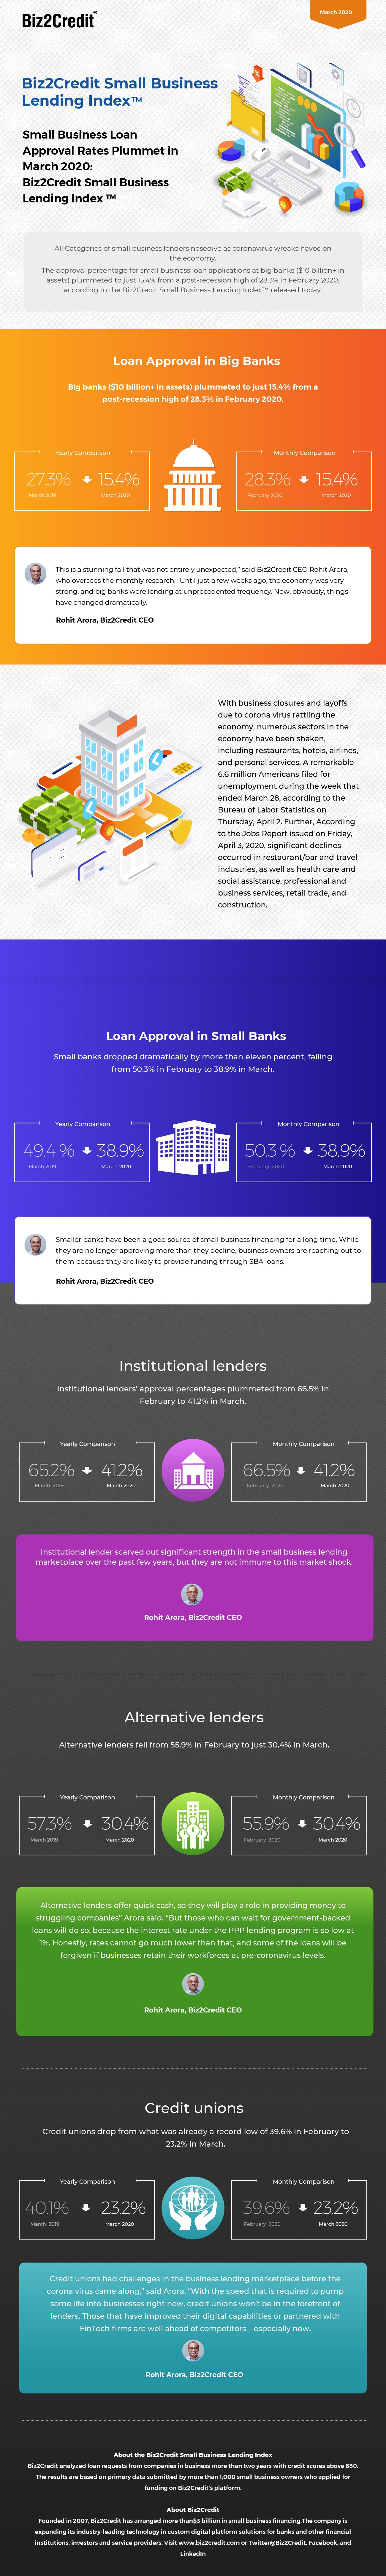 Infographic Small Business Lending Index March 2020 Biz2credit In 2020 Small Business Lending Small Business Loans Business Loans